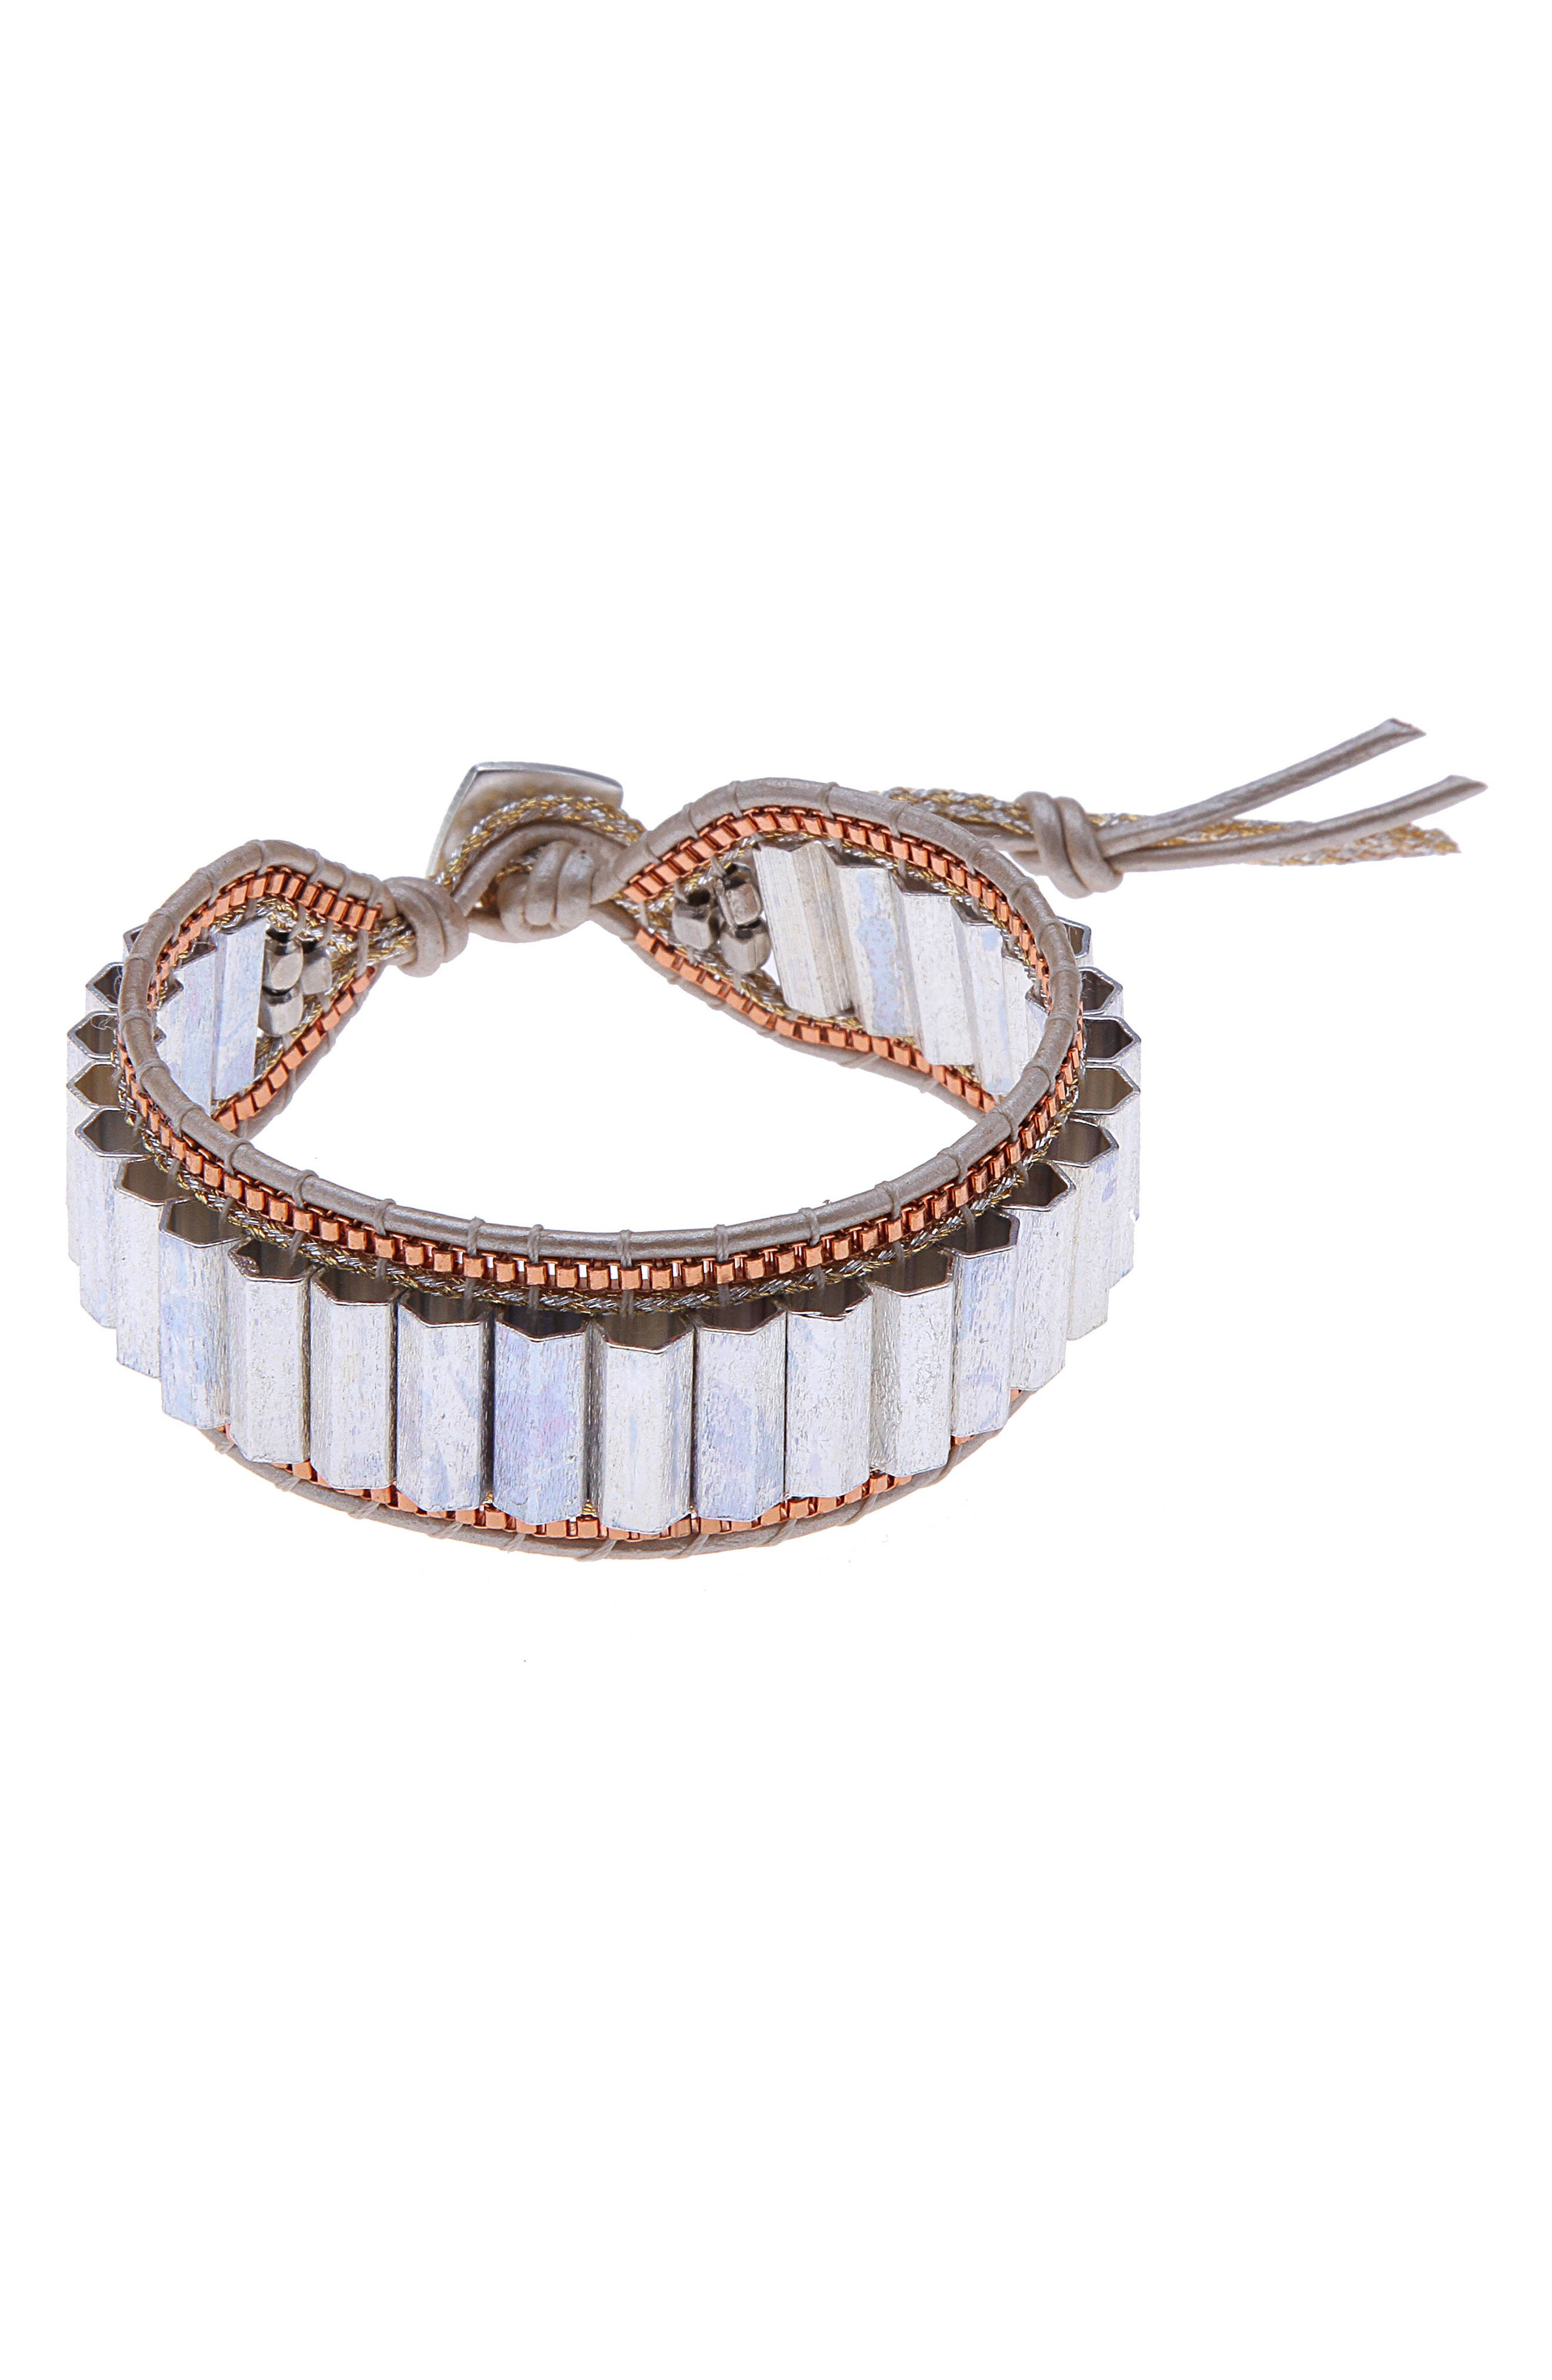 Leather & Metal Bead Bracelet,                         Main,                         color, Silver